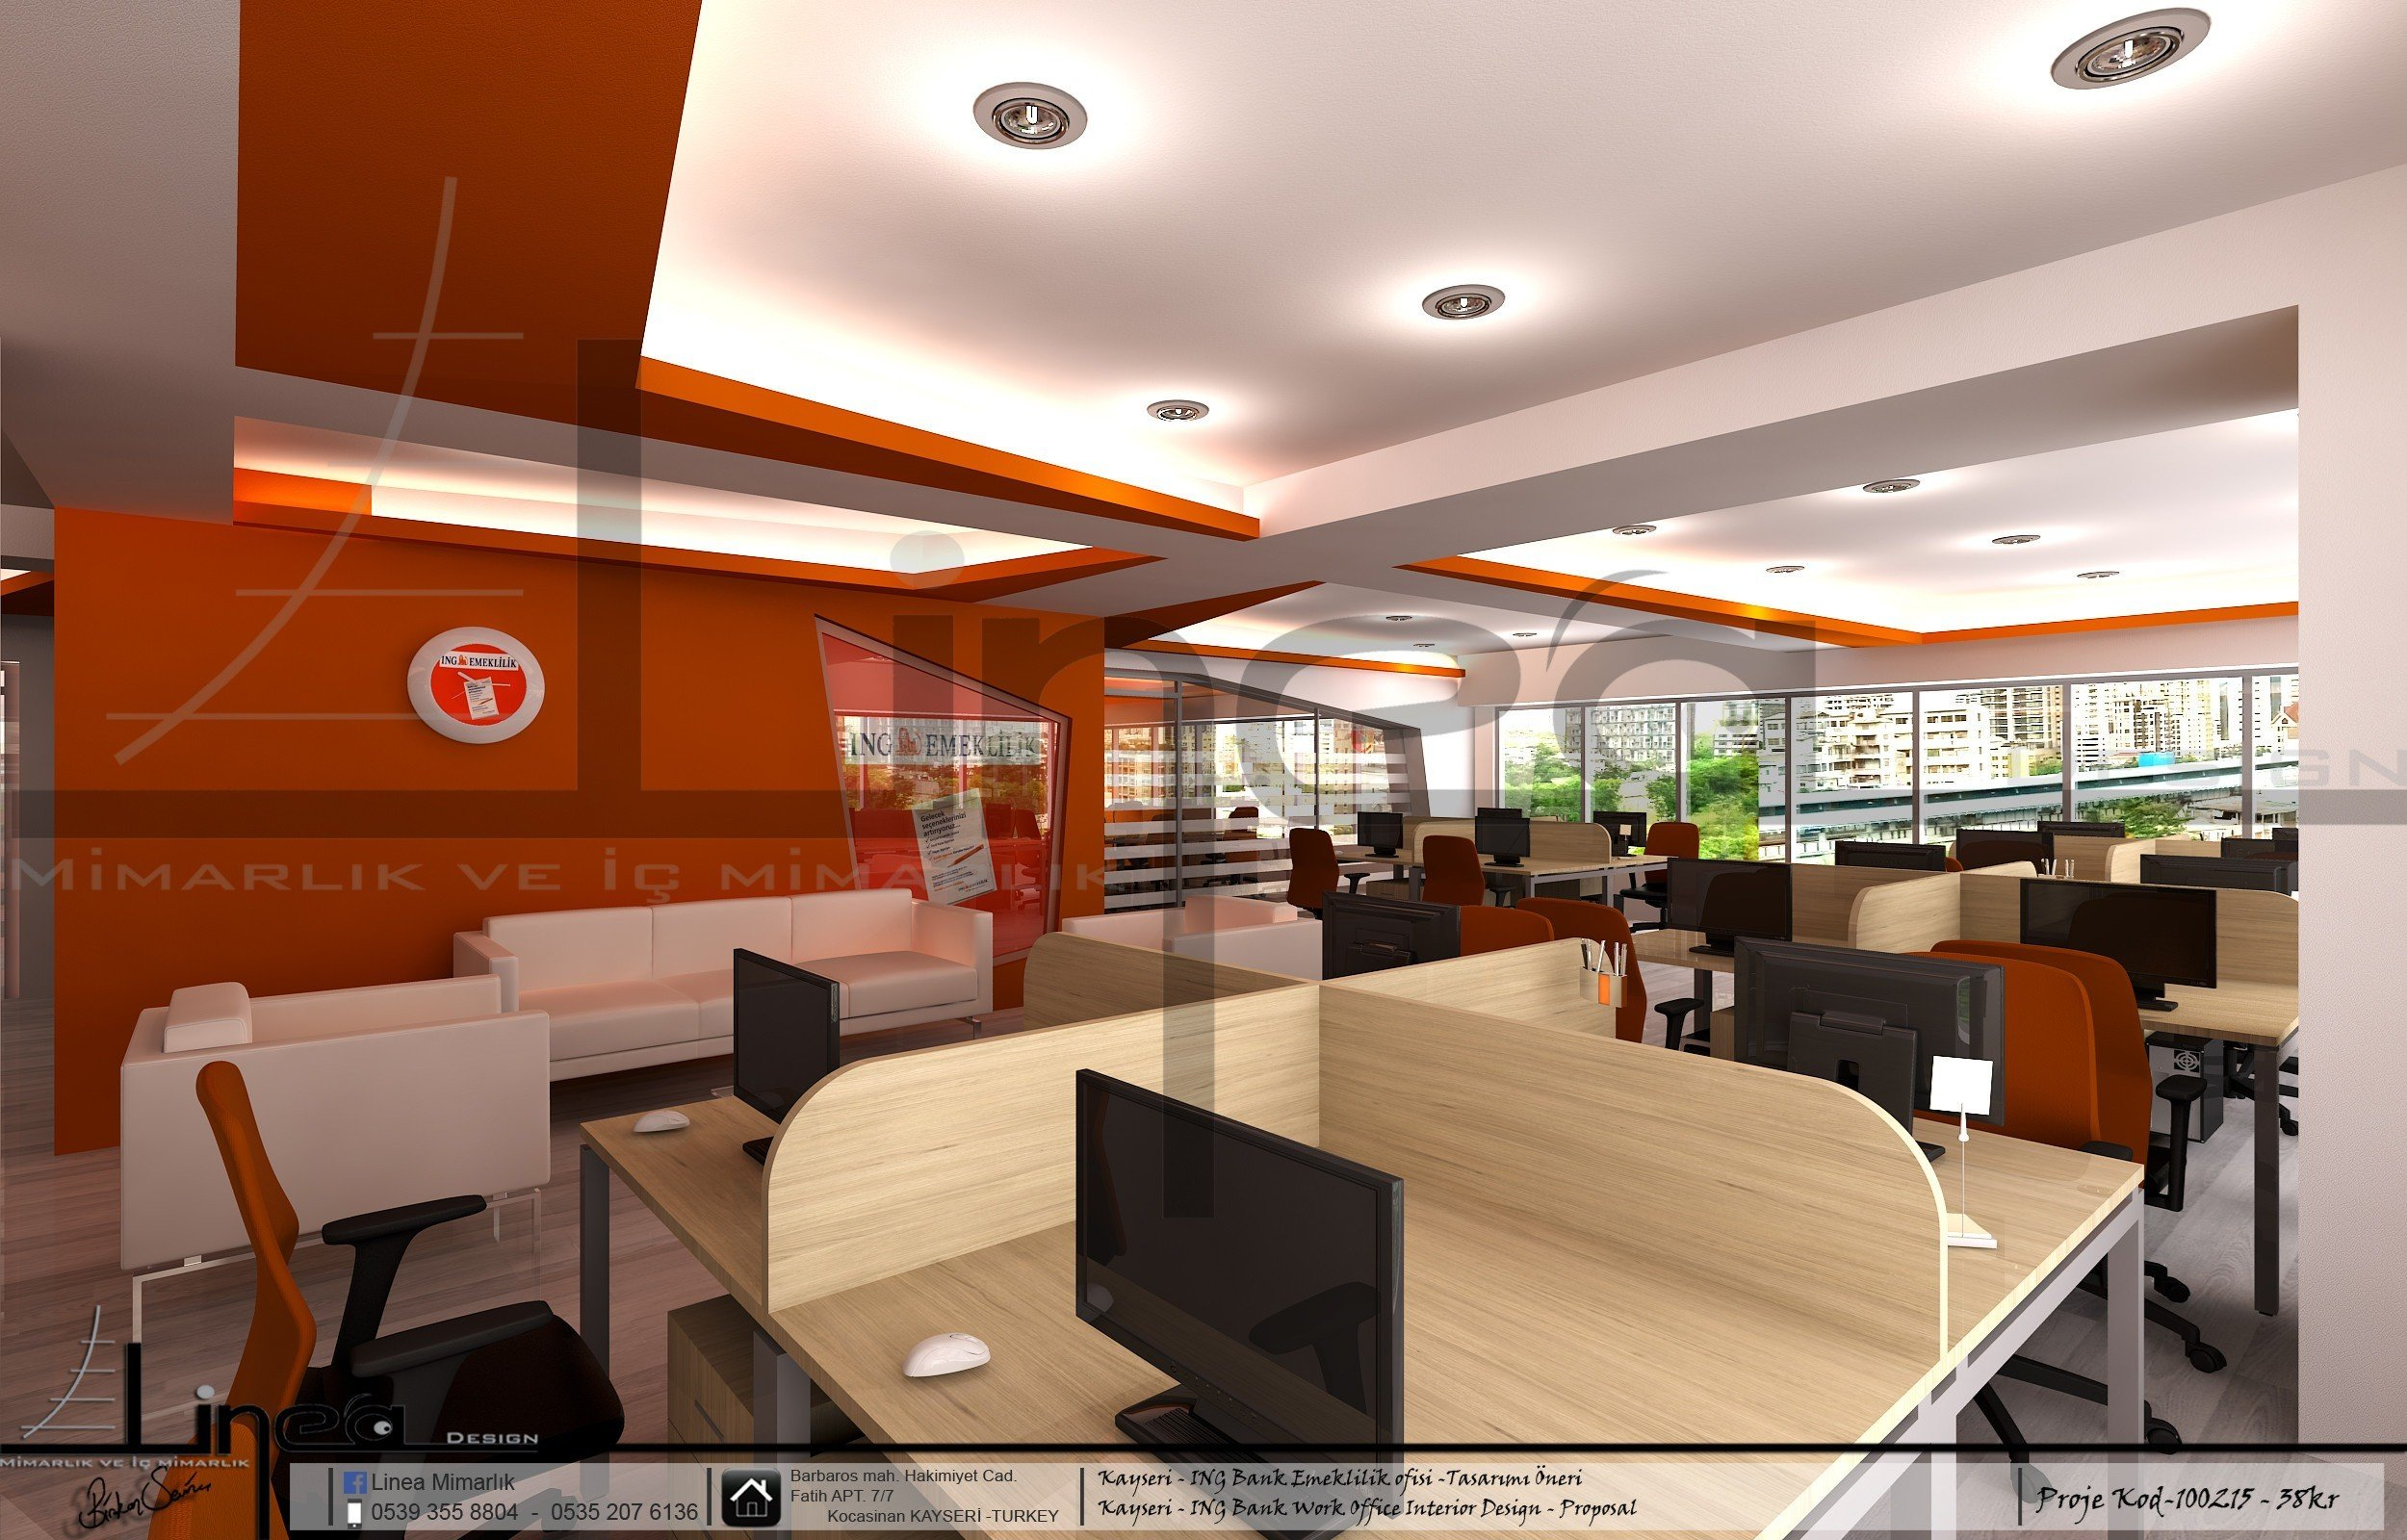 ing bank work office interior design proposal picture gallery rh archilovers com